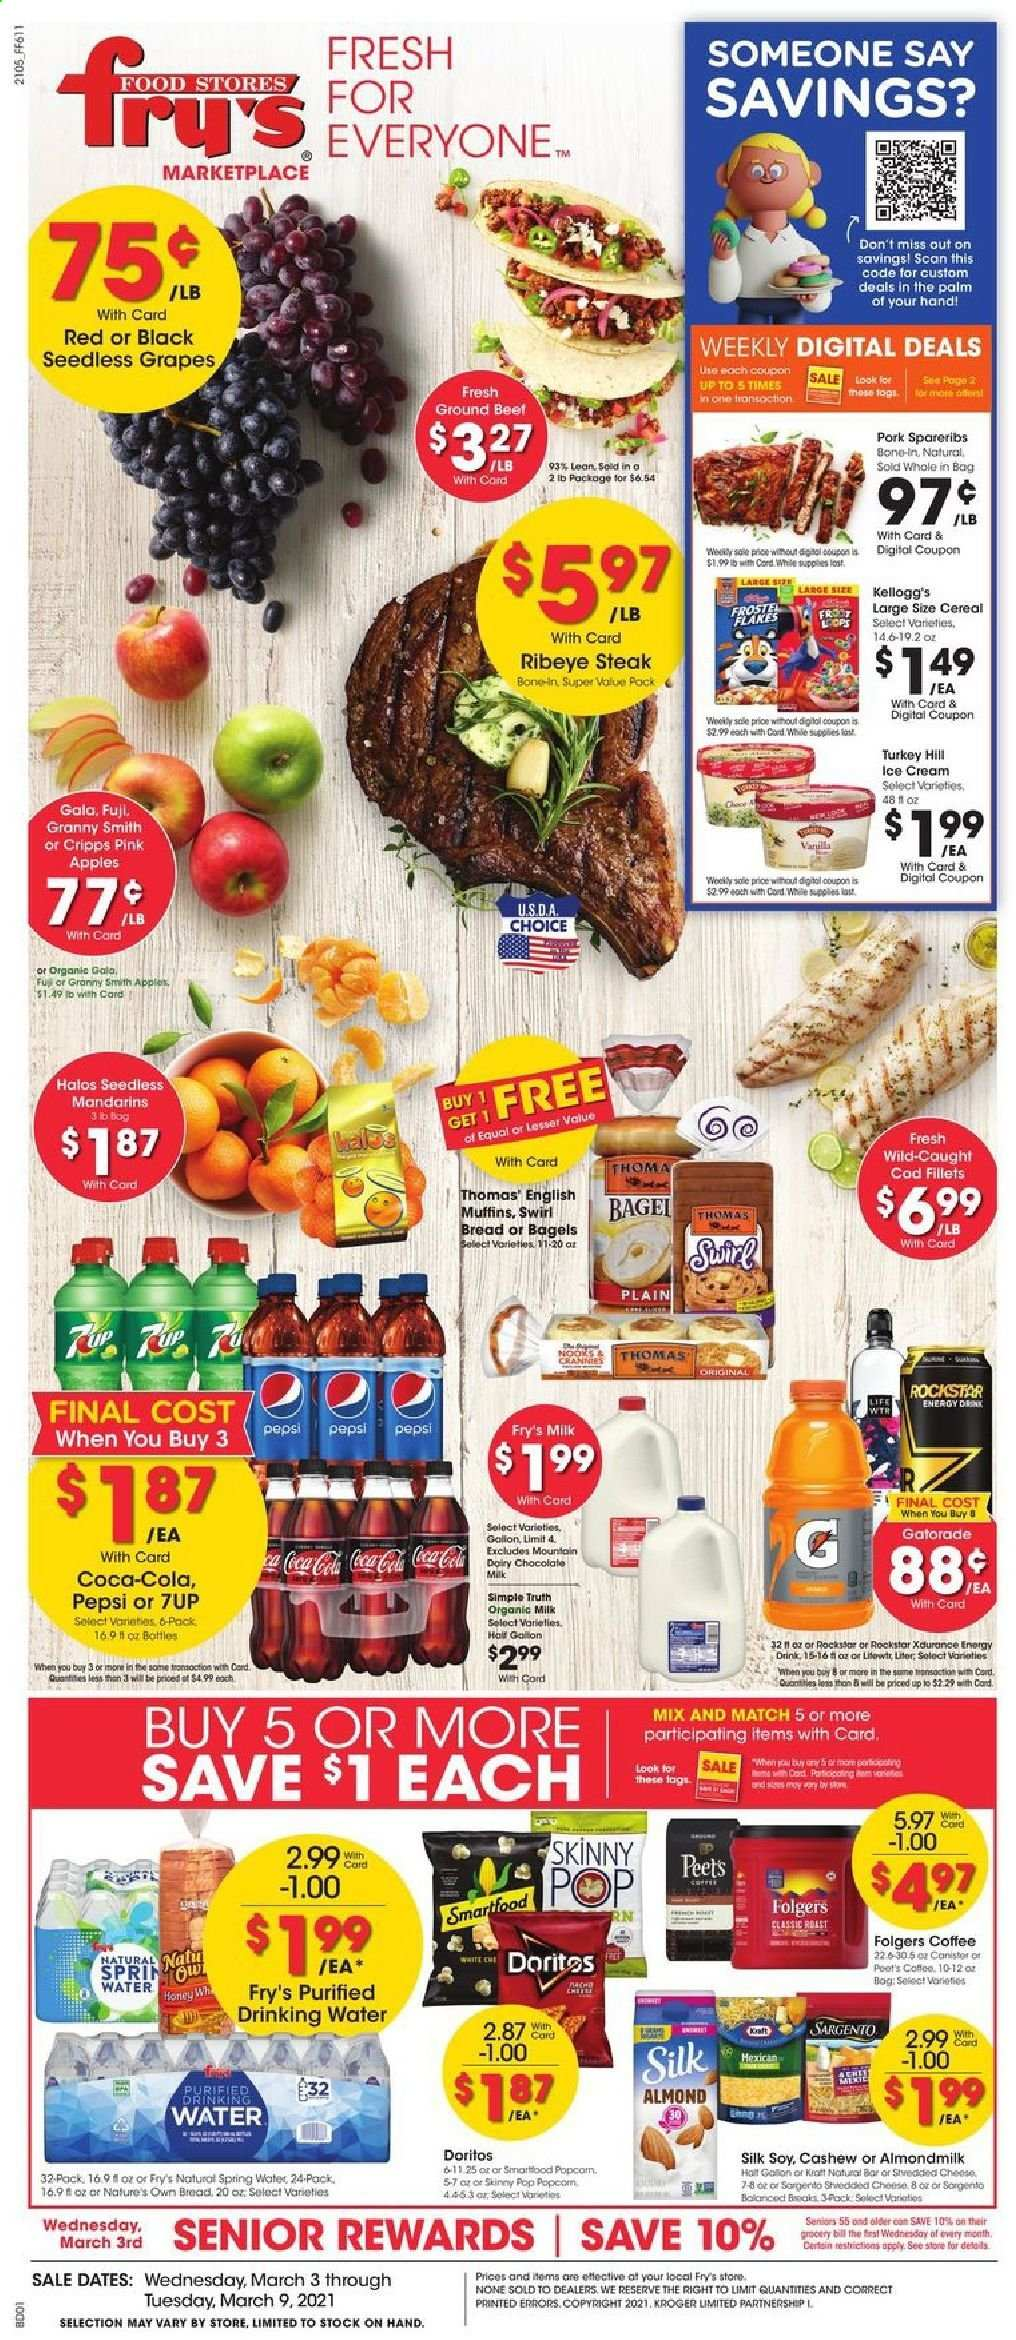 Fry's Flyer - 03.03.2021 - 03.09.2021 - Sales products - seedless grapes, bread, bagels, muffin, apples, cod, english muffins, cheese, Sargento, almond milk, organic milk, Silk, Kellogg's, Doritos, Smartfood, popcorn, Skinny Pop, mandarines, cereals, Coca-Cola, Pepsi, energy drink, 7UP, Rockstar, Gatorade, spring water, coffee, Folgers, L'Or, turkey, beef meat, beef steak, ground beef, steak, rib eye, ribeye steak, pork spare ribs, Nature's Own, water. Page 1.